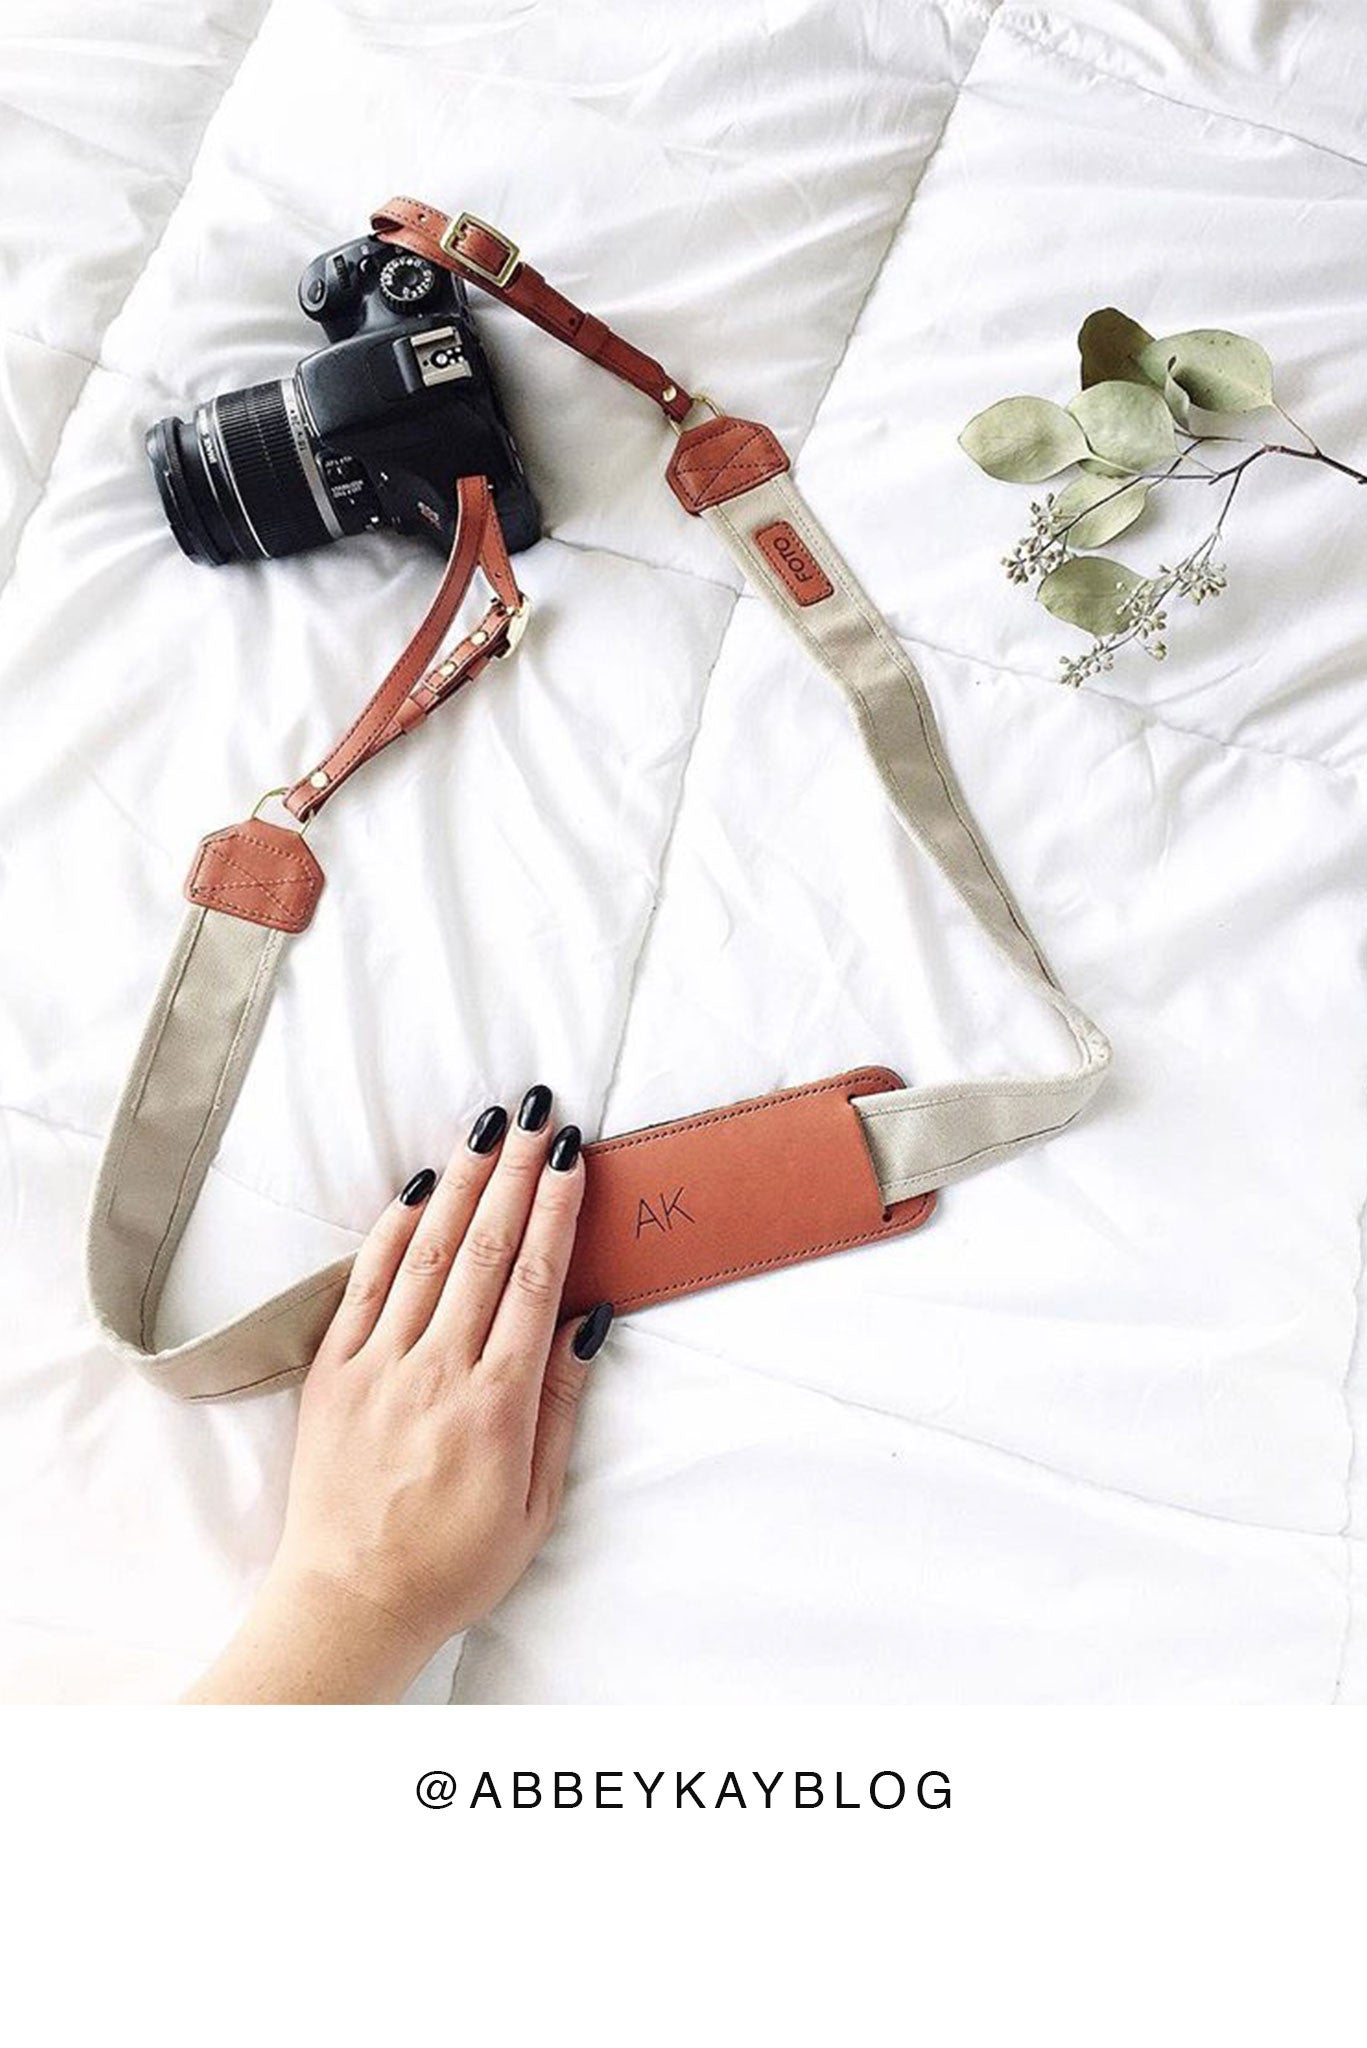 FOTO | Stone Fotostrap - a khaki canvas and genuine leather camera strap that can be personalized with a monogram or business logo, making it the perfect personalized gift!